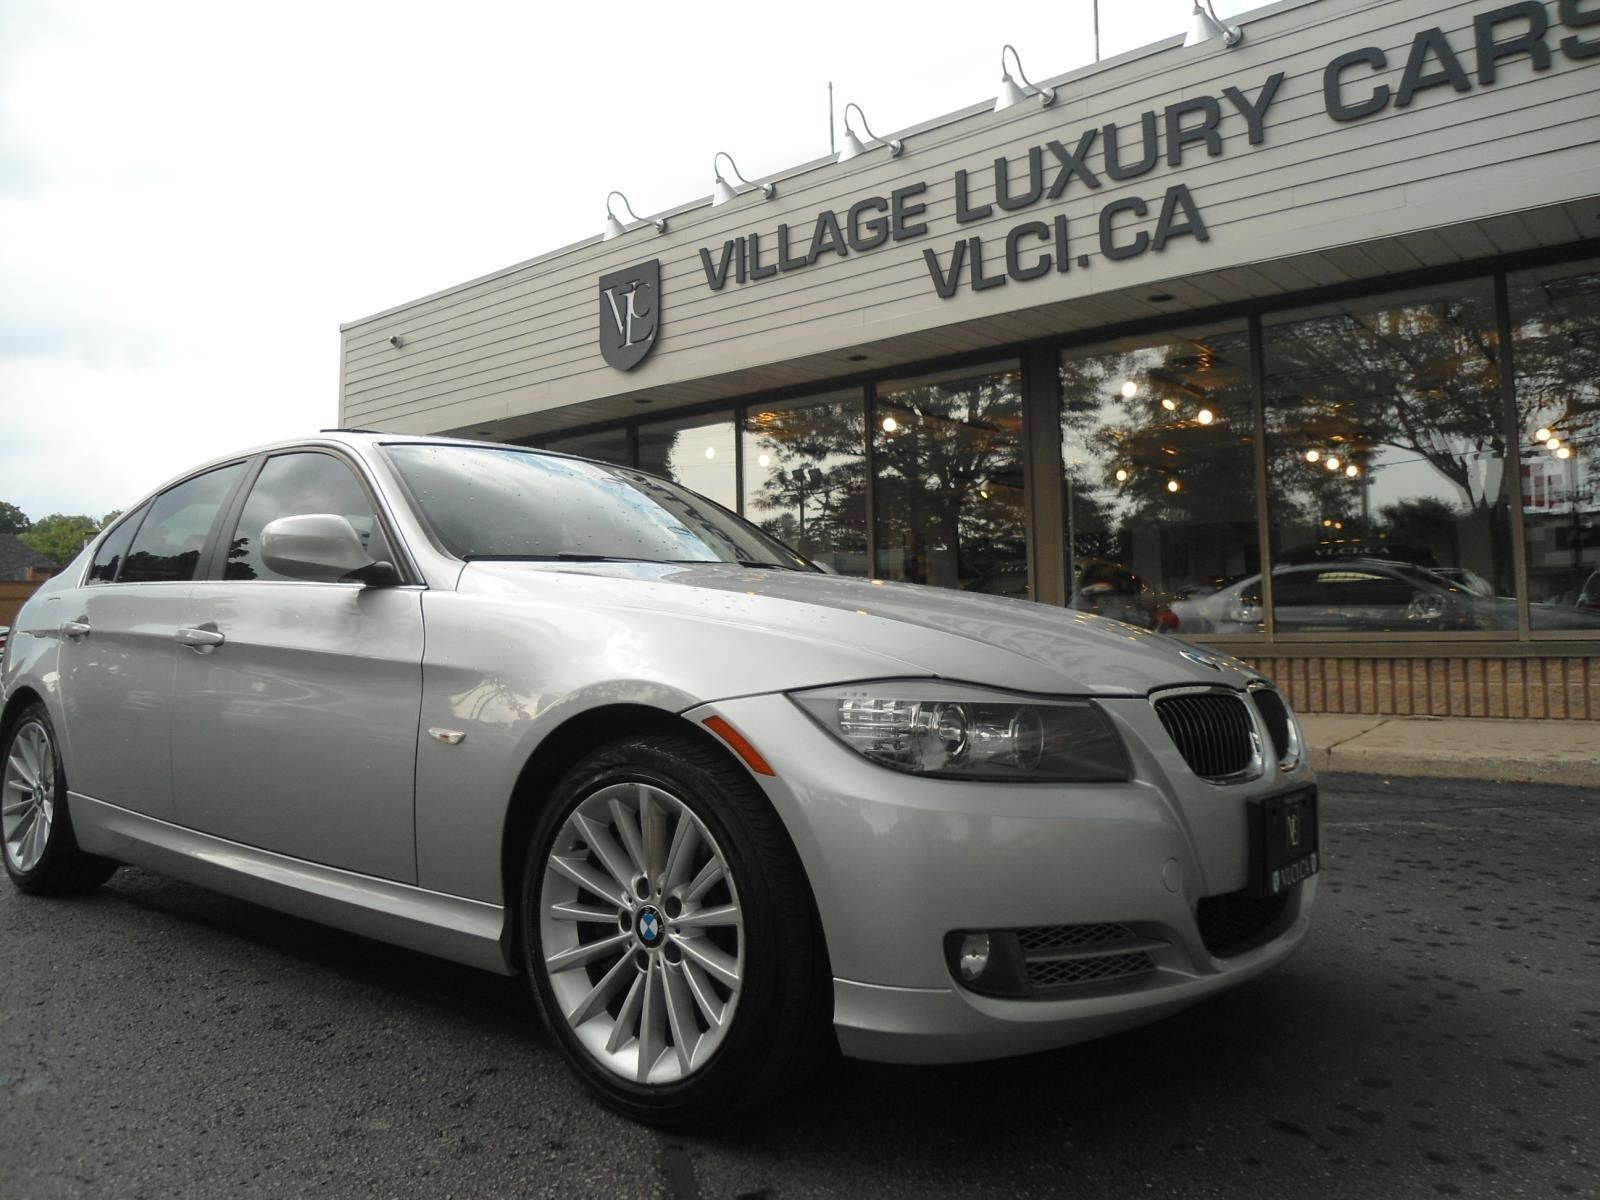 Drivers Village Used Cars New 2011 Bmw 335d In Review Village Luxury Cars Youtube